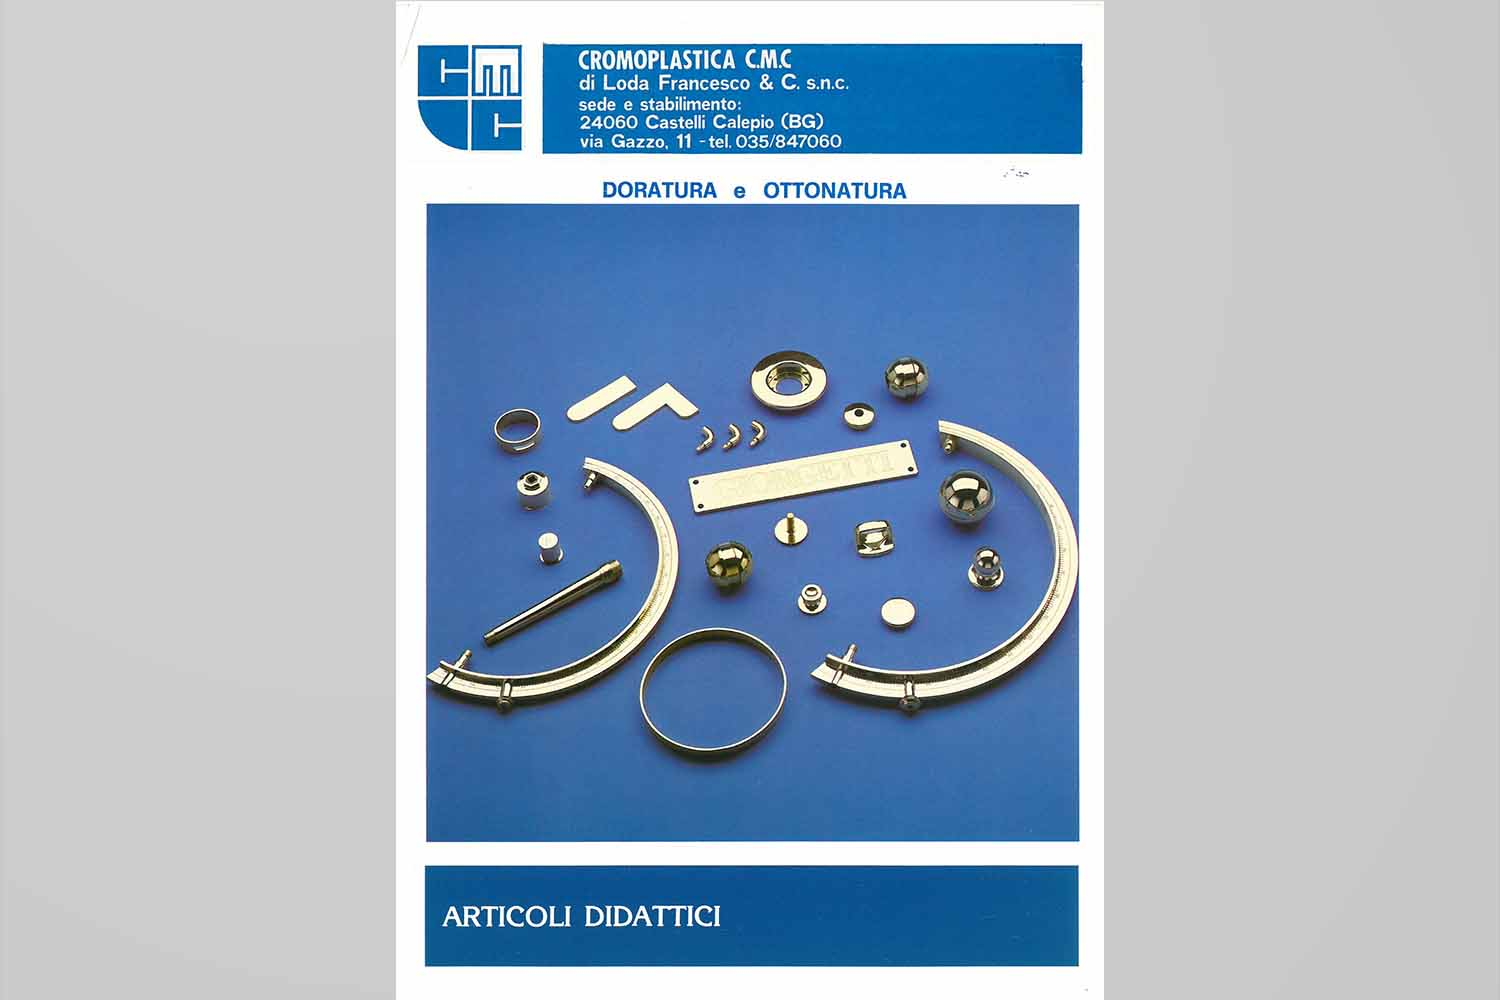 electroplated-didactic-items-brochure-vintage